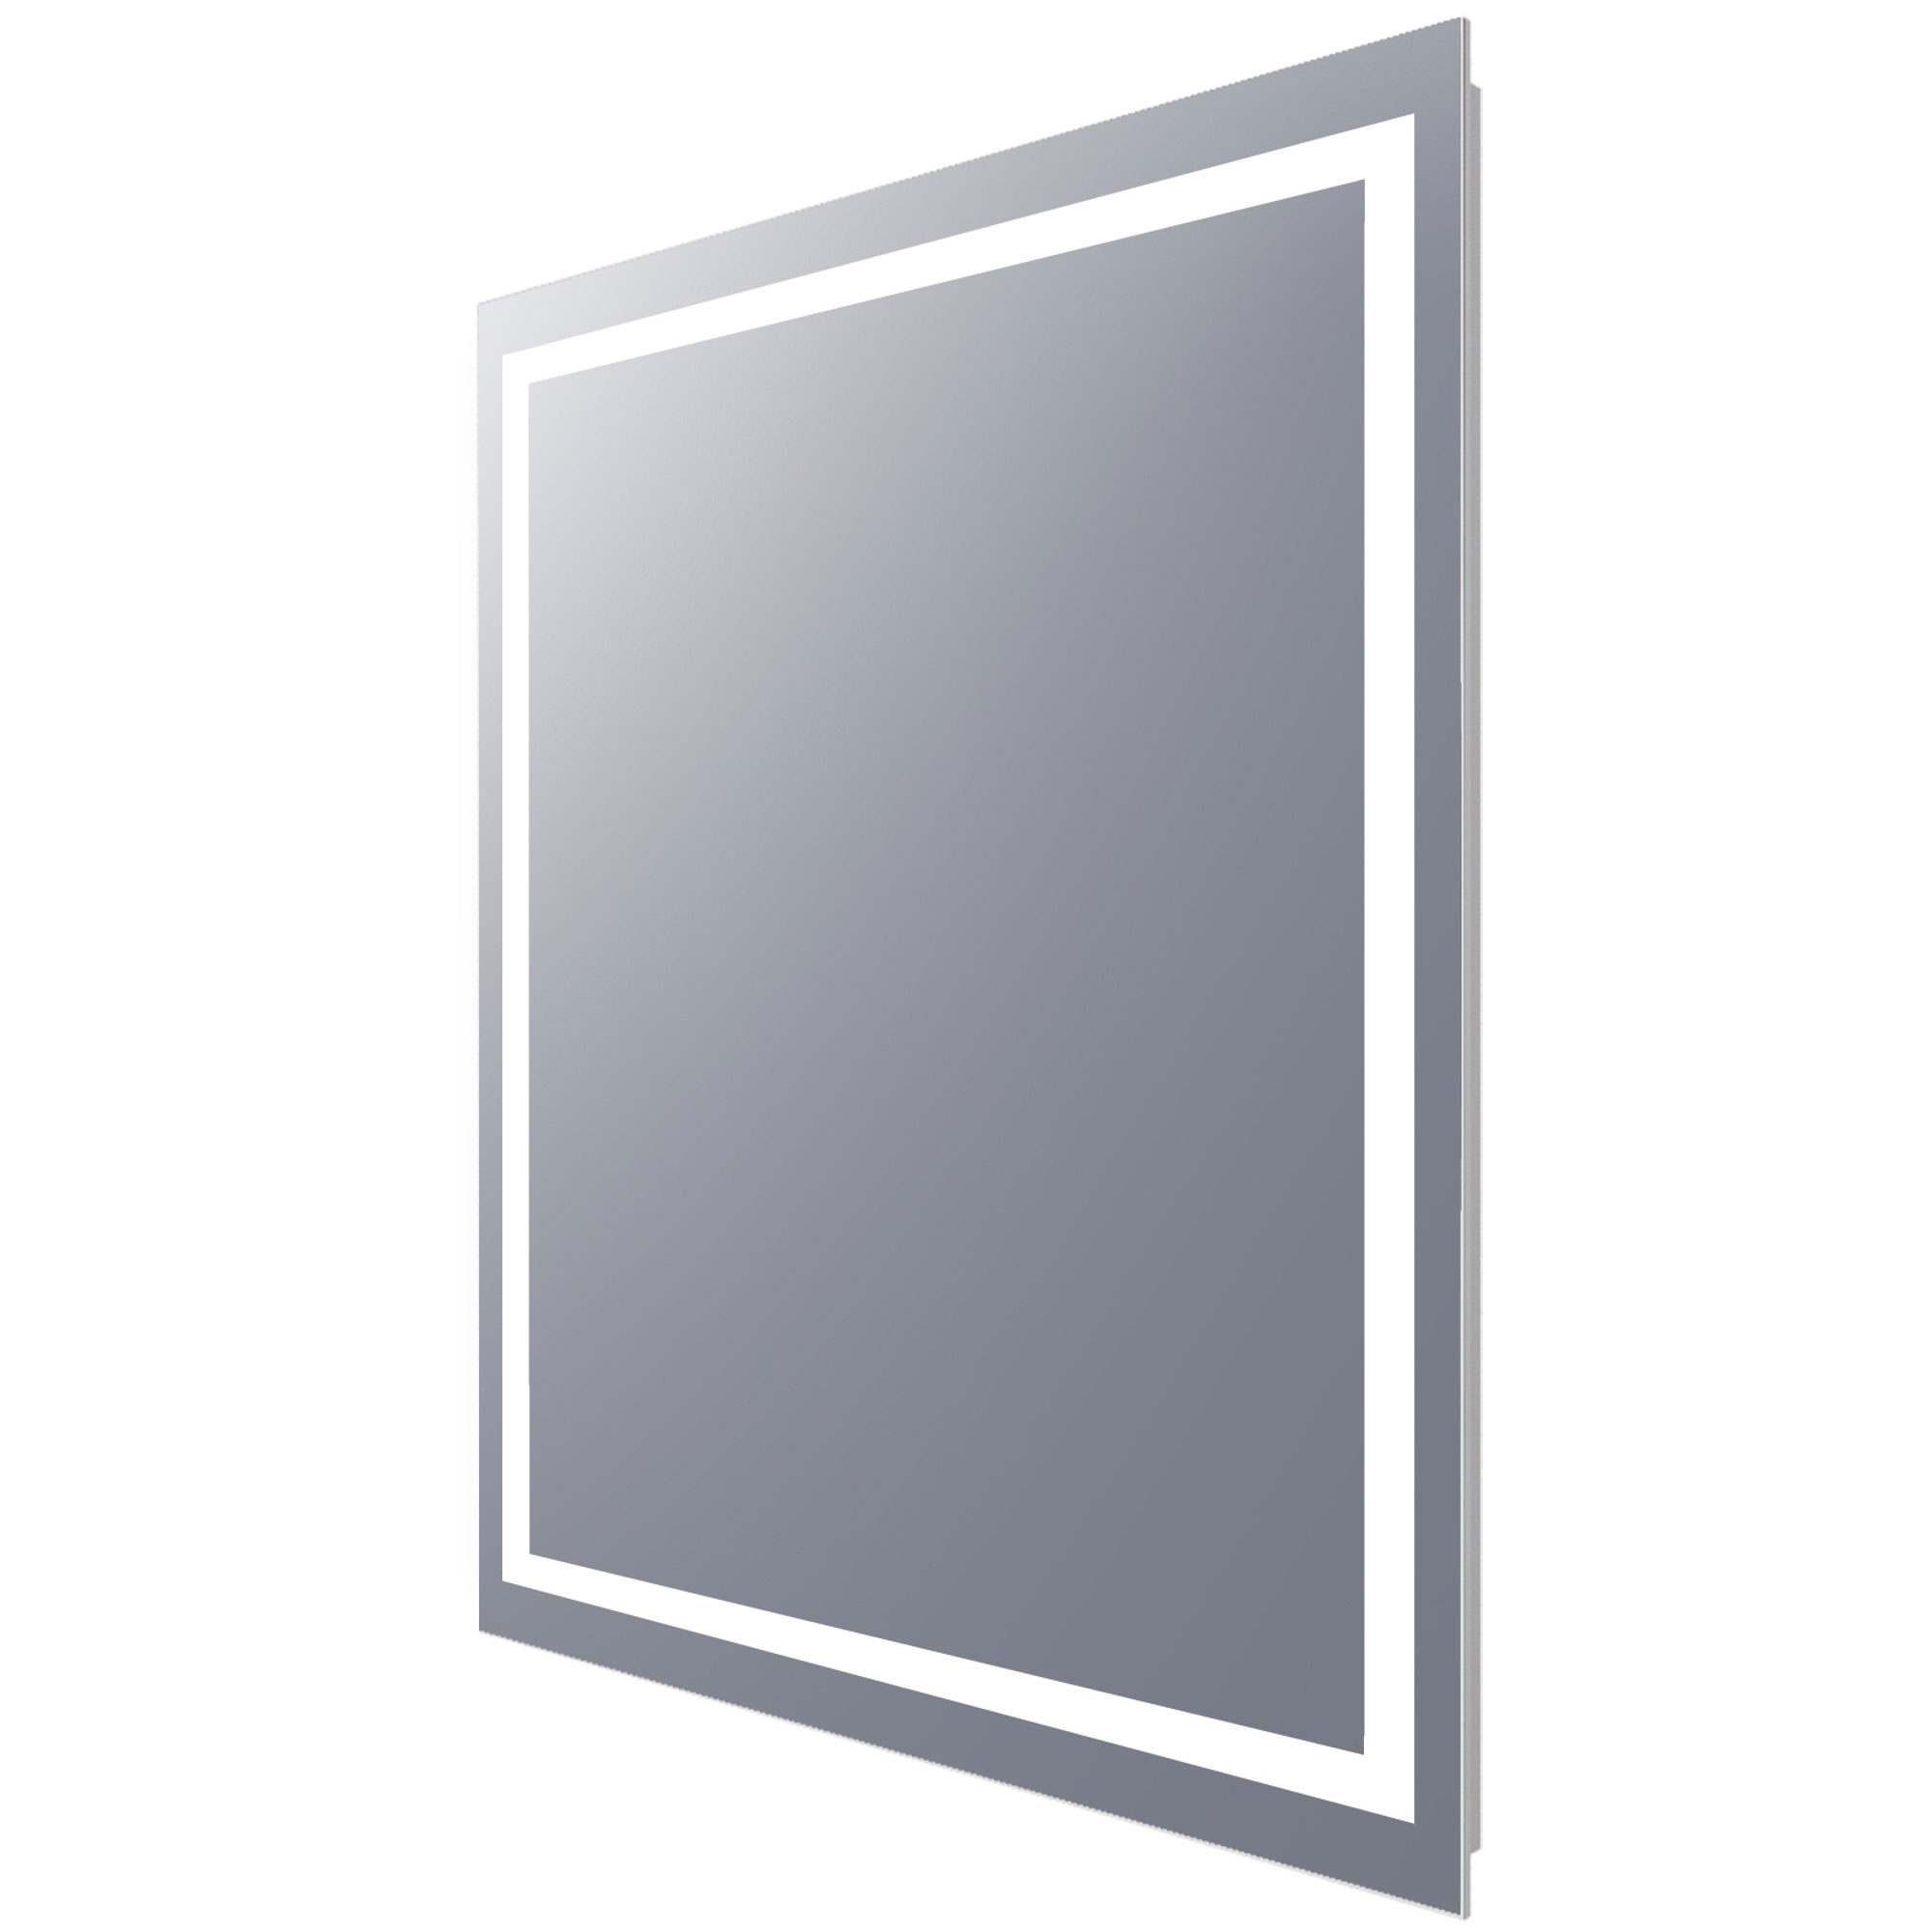 Integrity Rectangle Lighted Mirror by Electric Mirror   INT-3642